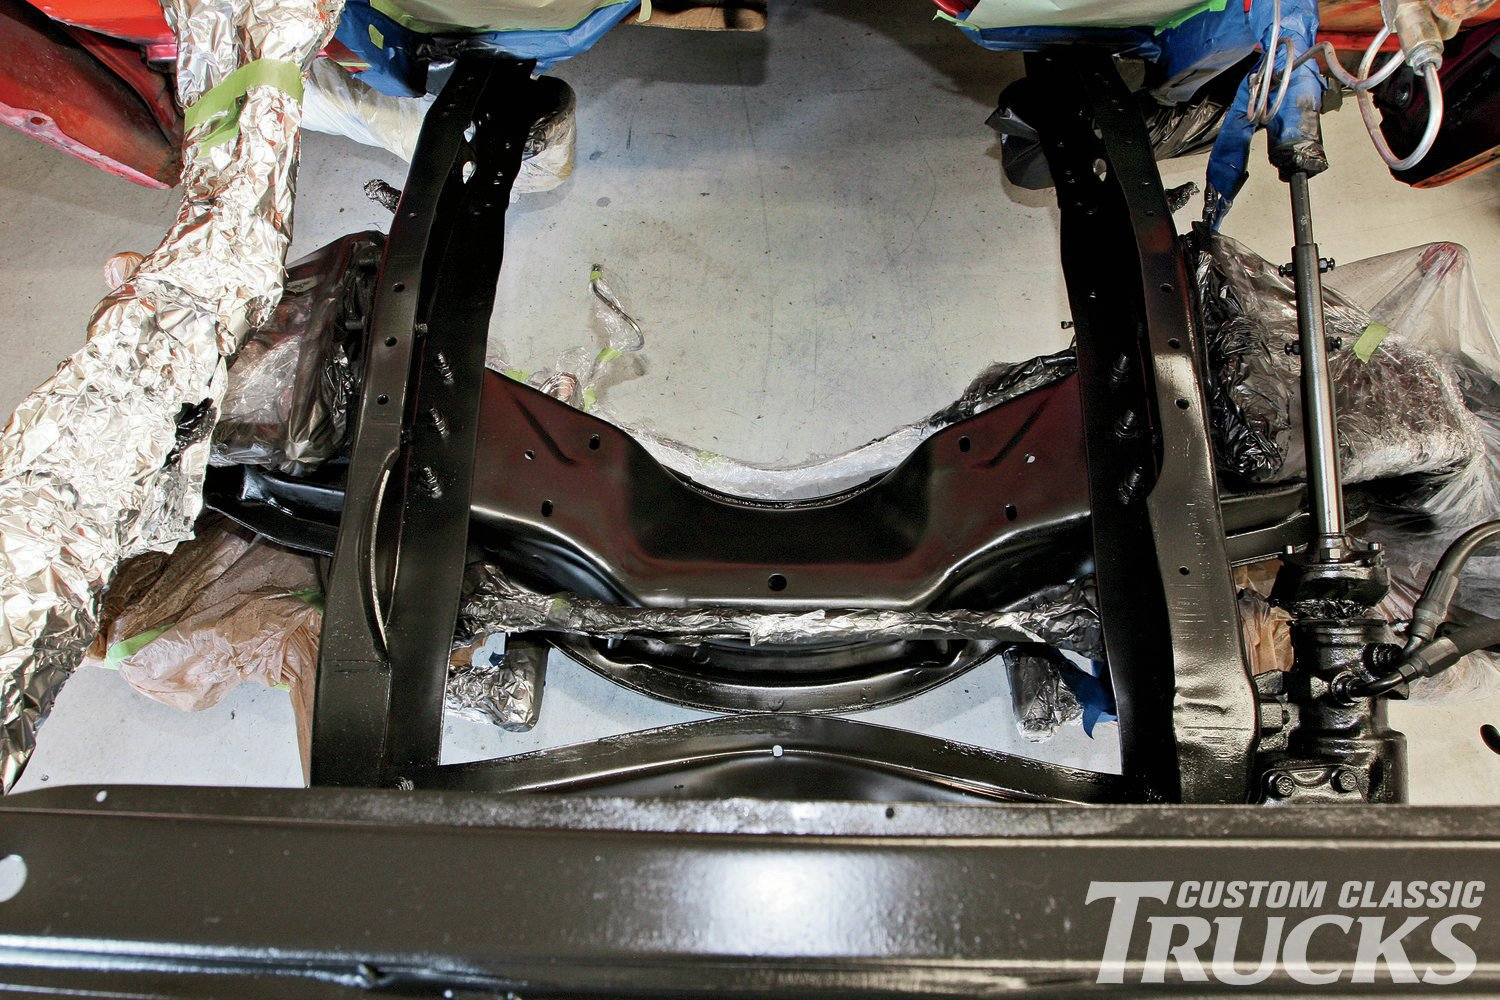 6. Here's what the chassis looks like just after applying the second coat of Chassis Black. Note the slight sheen and even appearance.